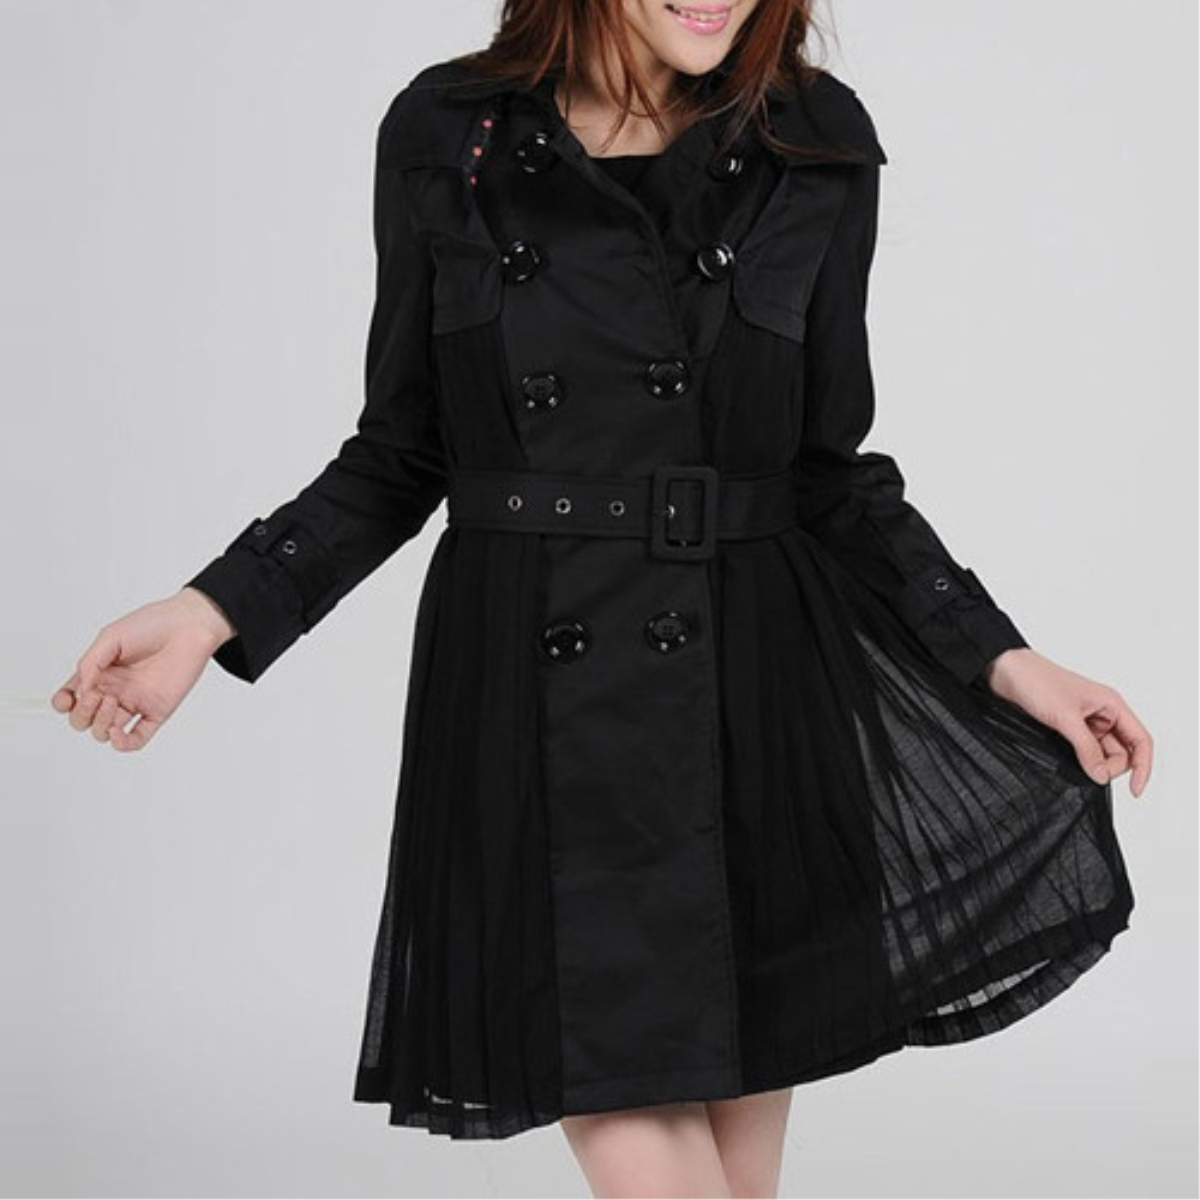 Women's New Style Chiffon Slim Waistband Coat,Cheap in Wendybox.com